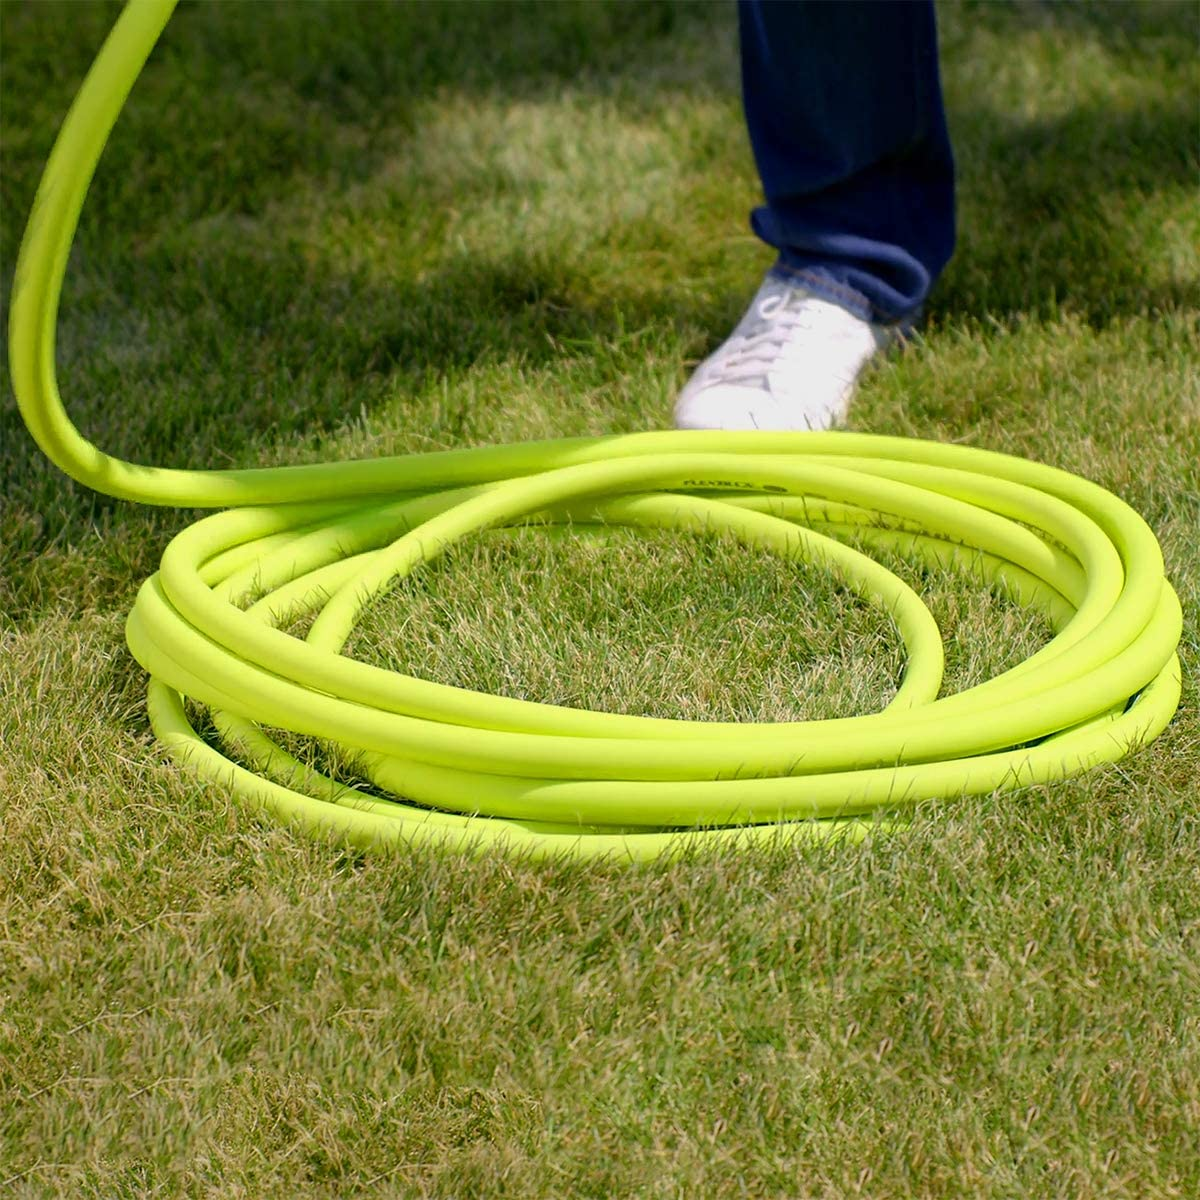 Best Non-Kinking Garden Hose Reviews and Buying Guide 2021